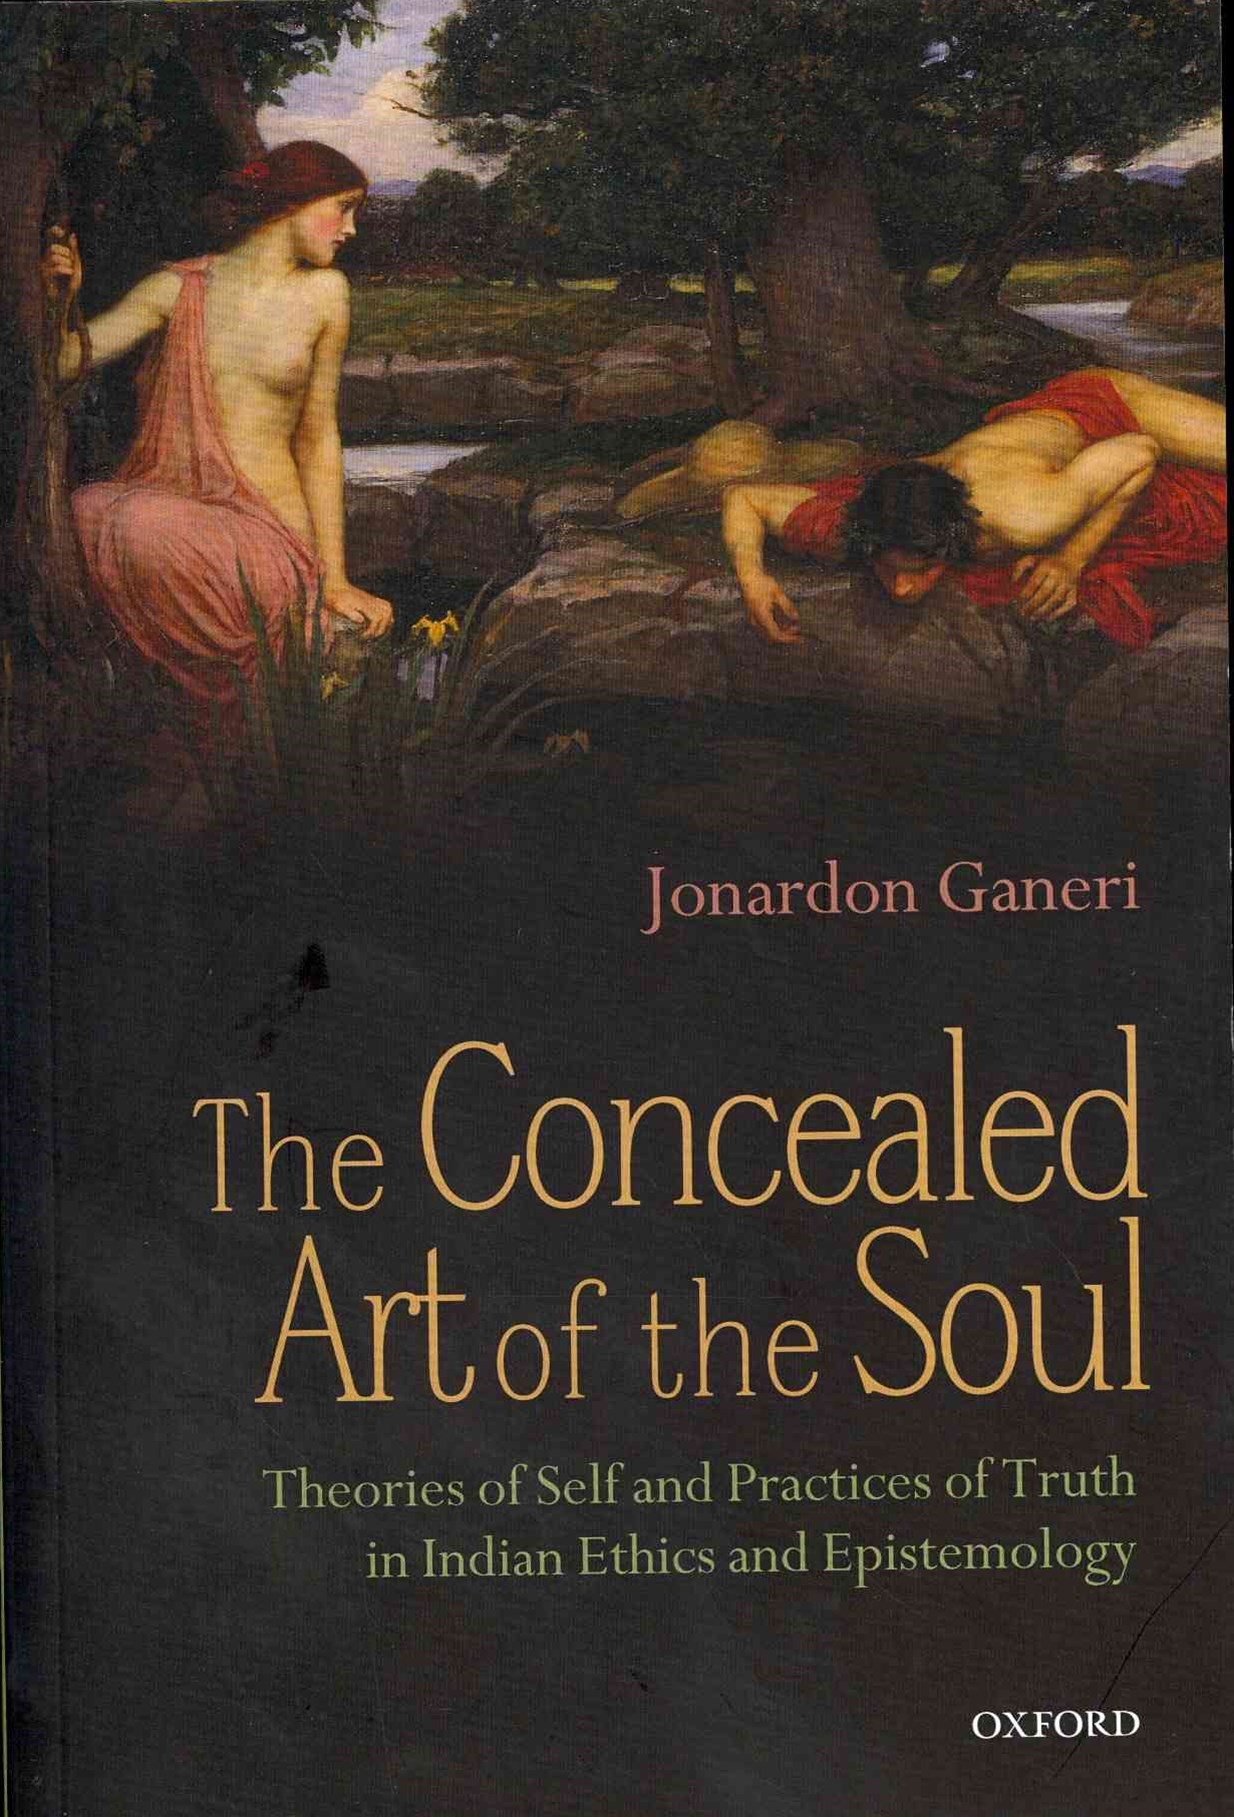 The Concealed Art of the Soul